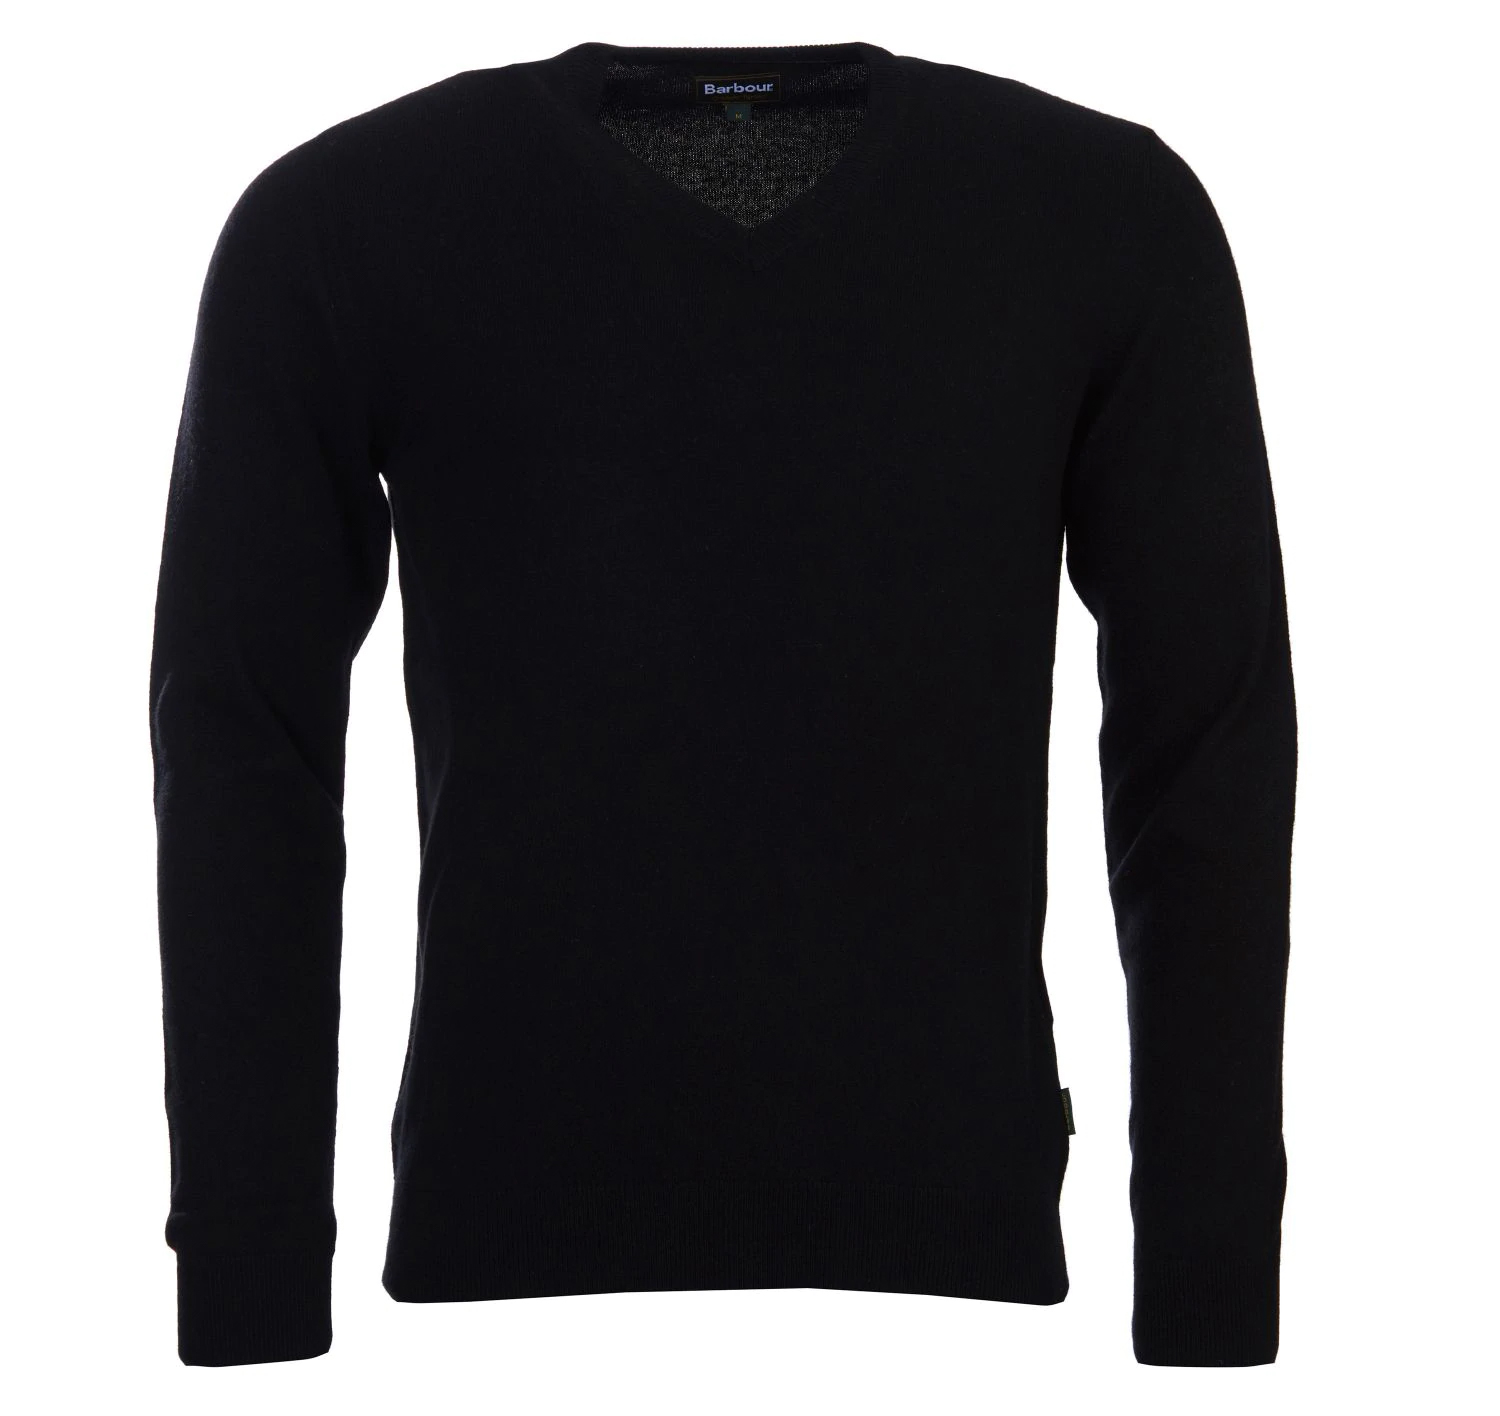 Barbour Harrow V Neck Jumper Black Barbour Lifestyle: from the Tartan Collection